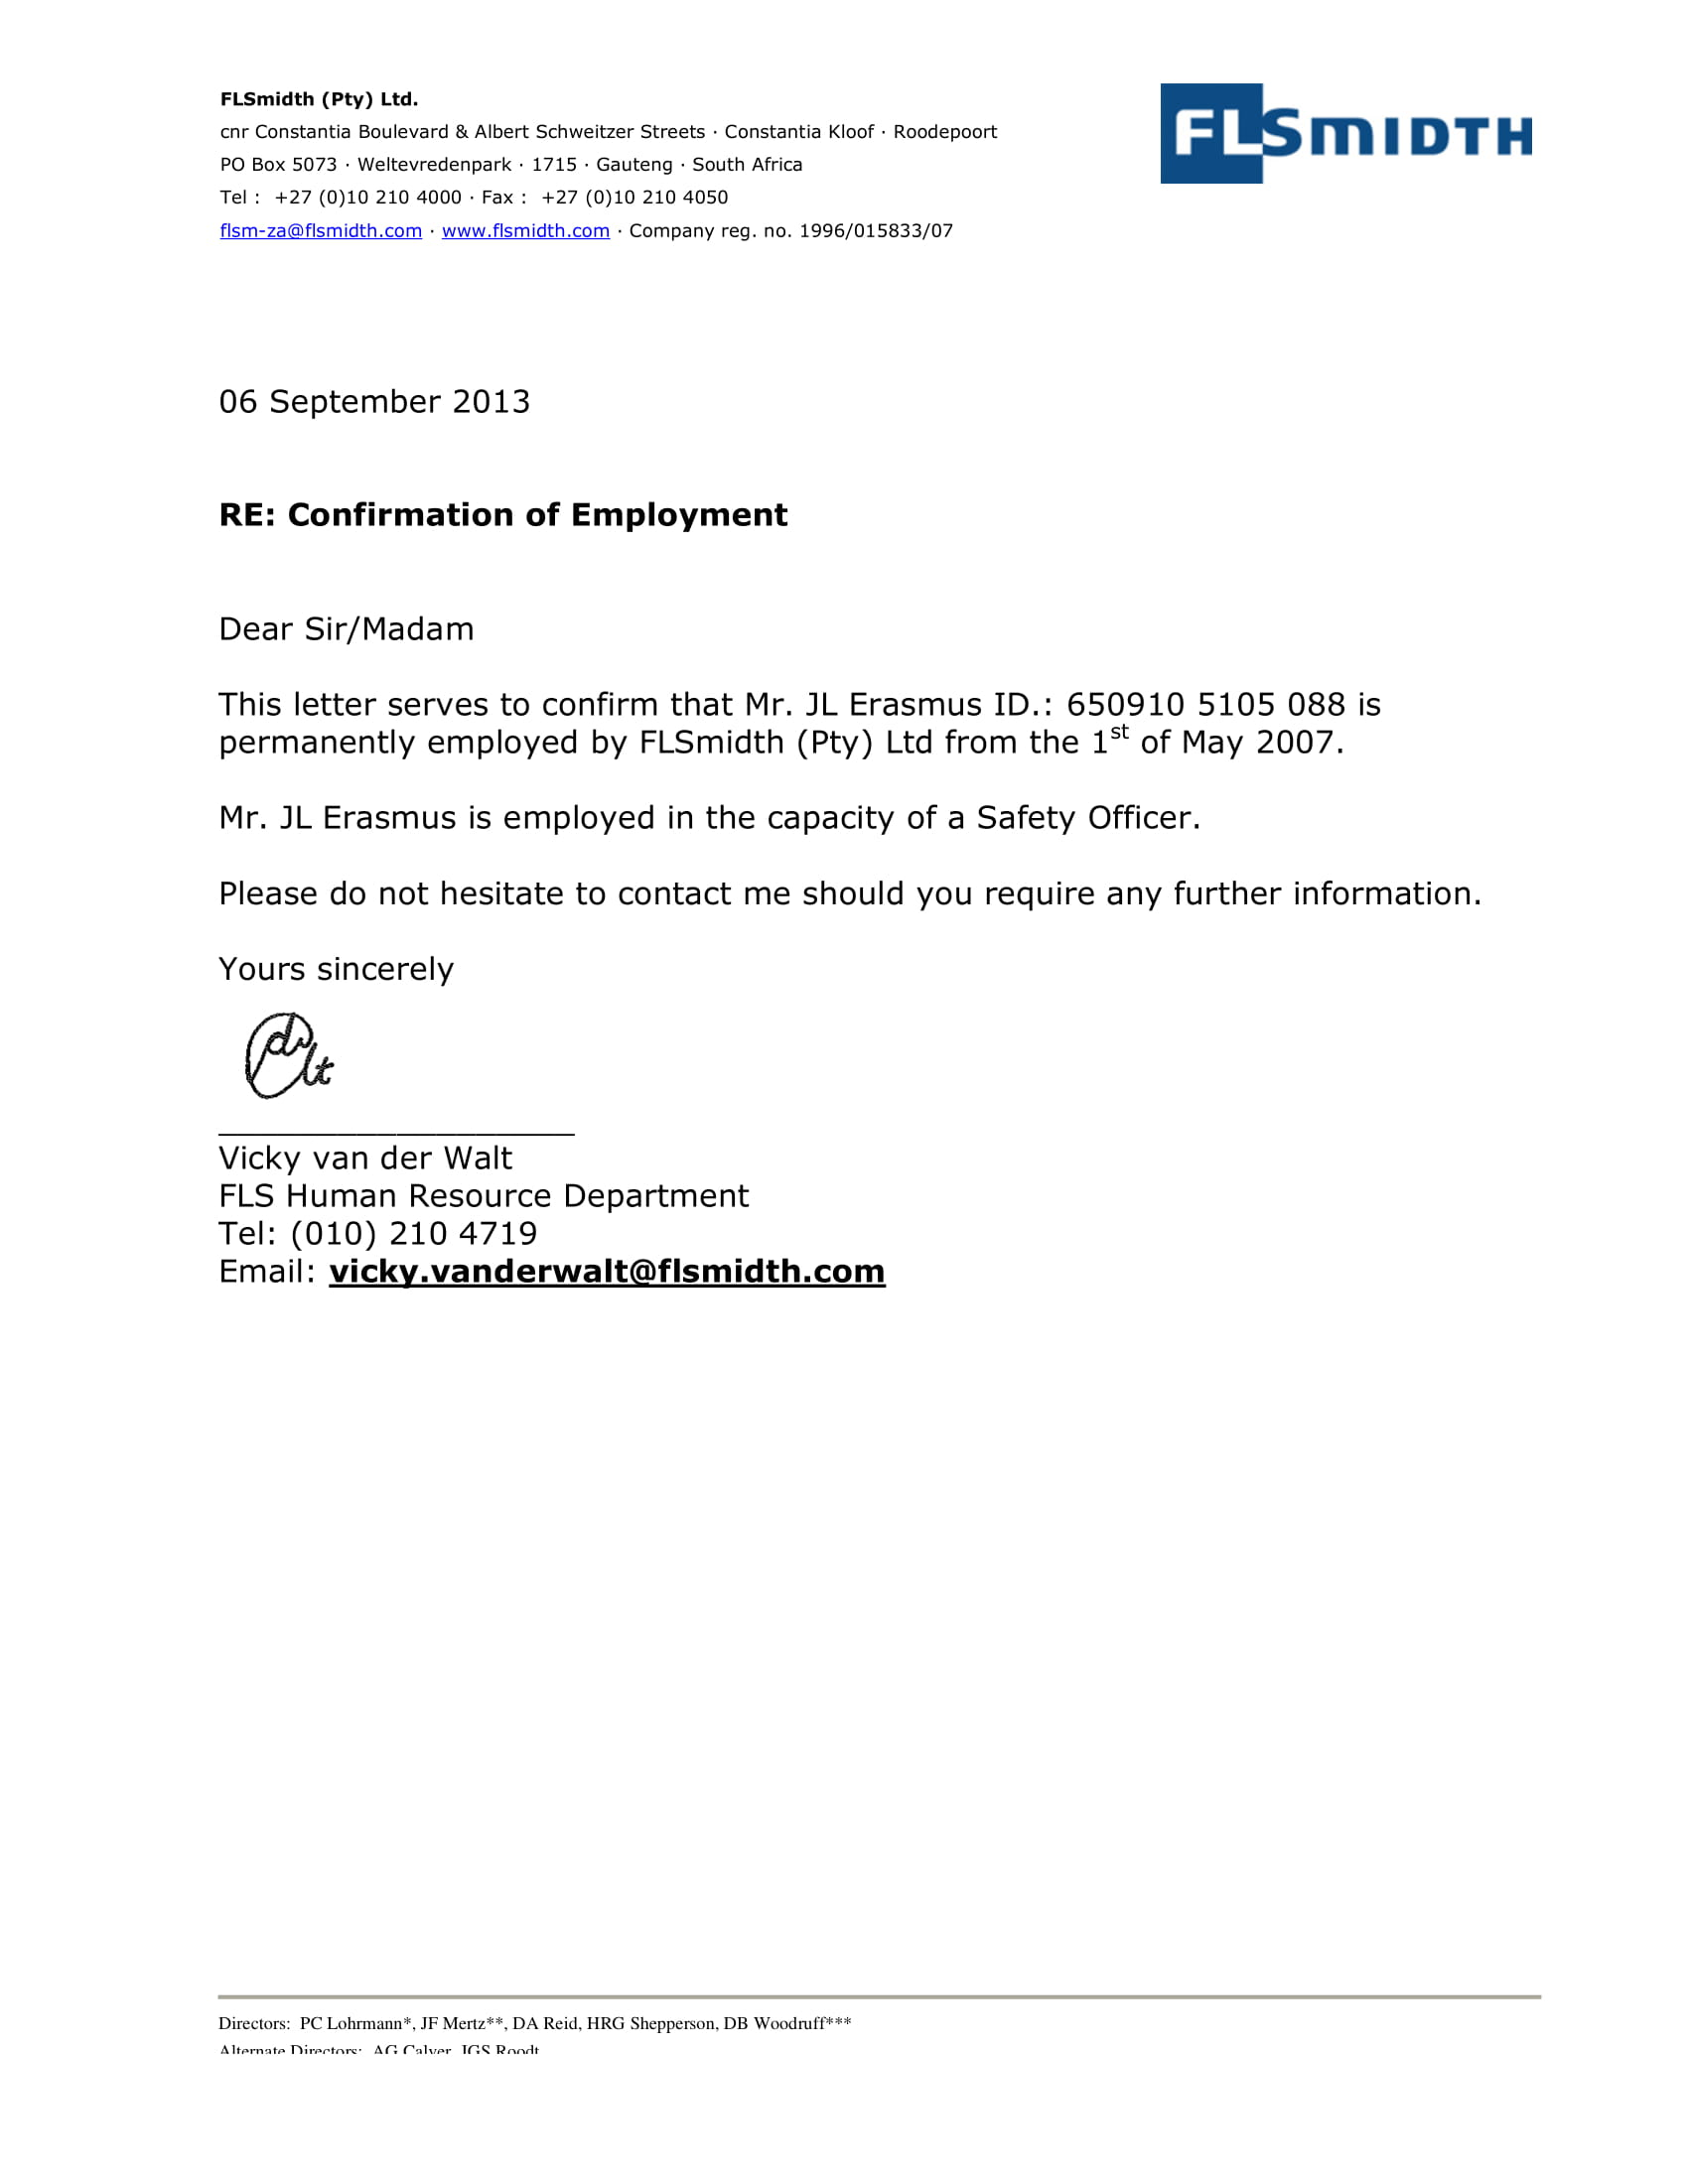 Confirmation Of Employment Letter Example